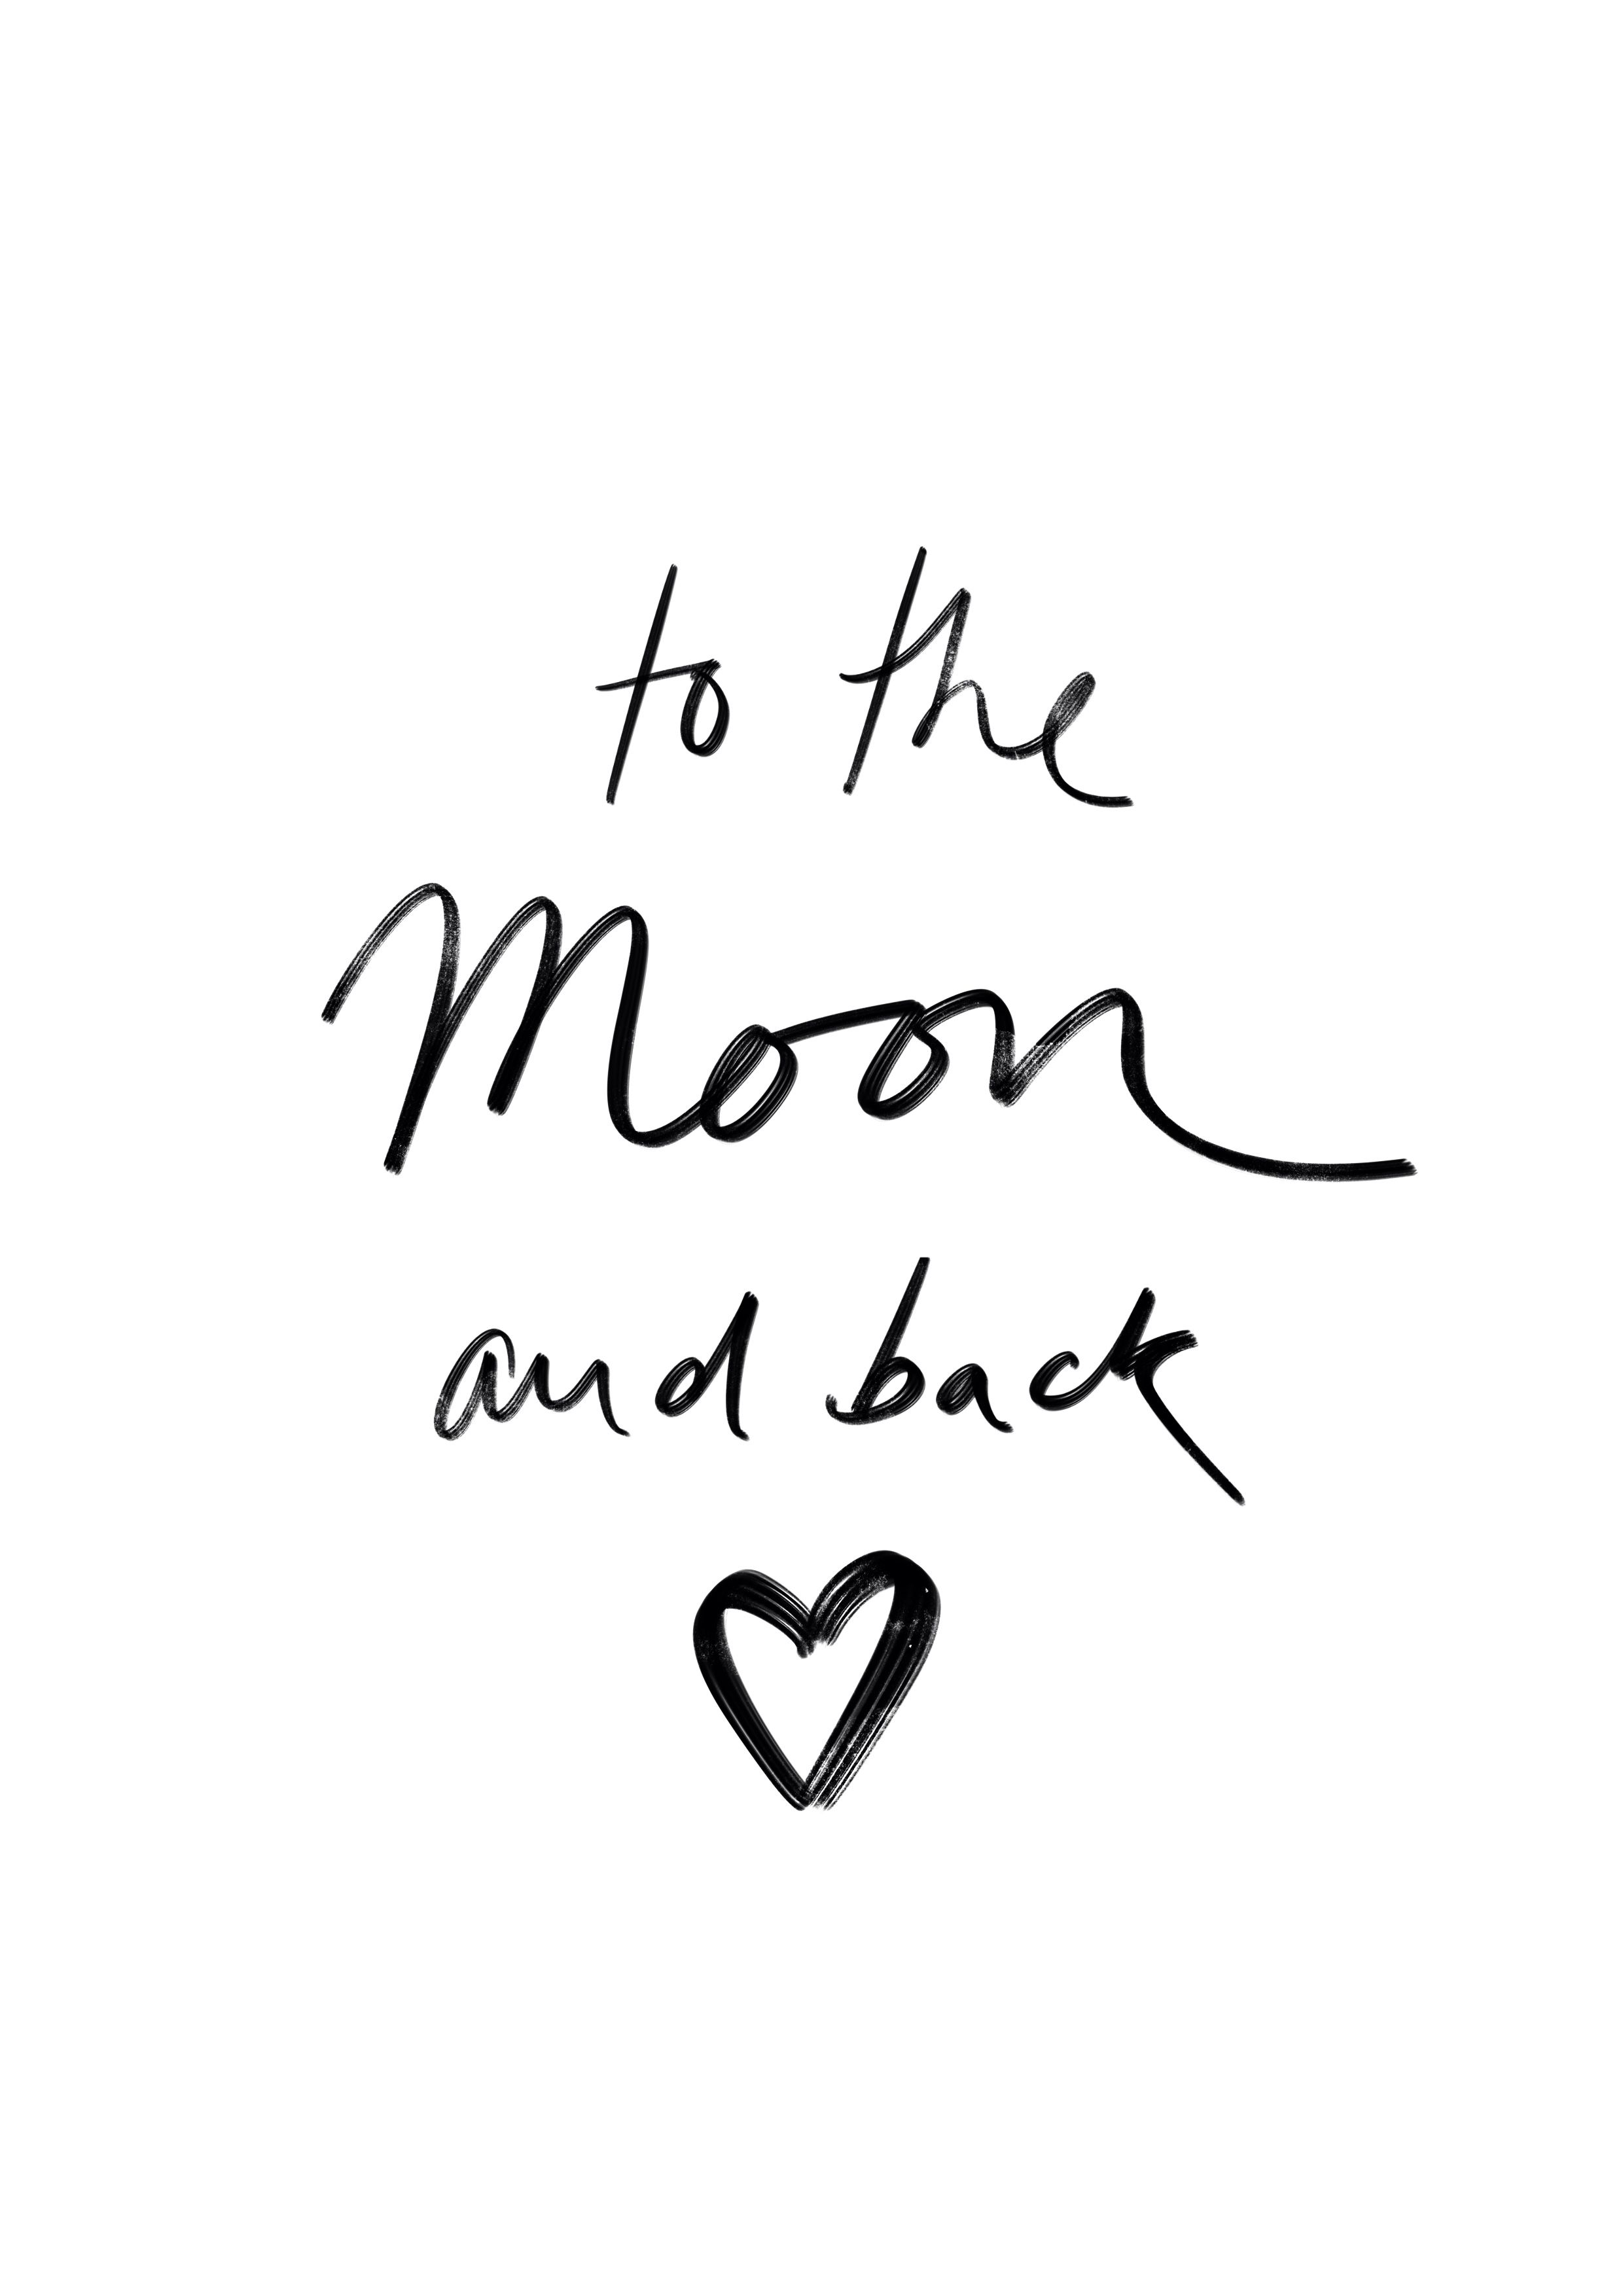 To the moon quote